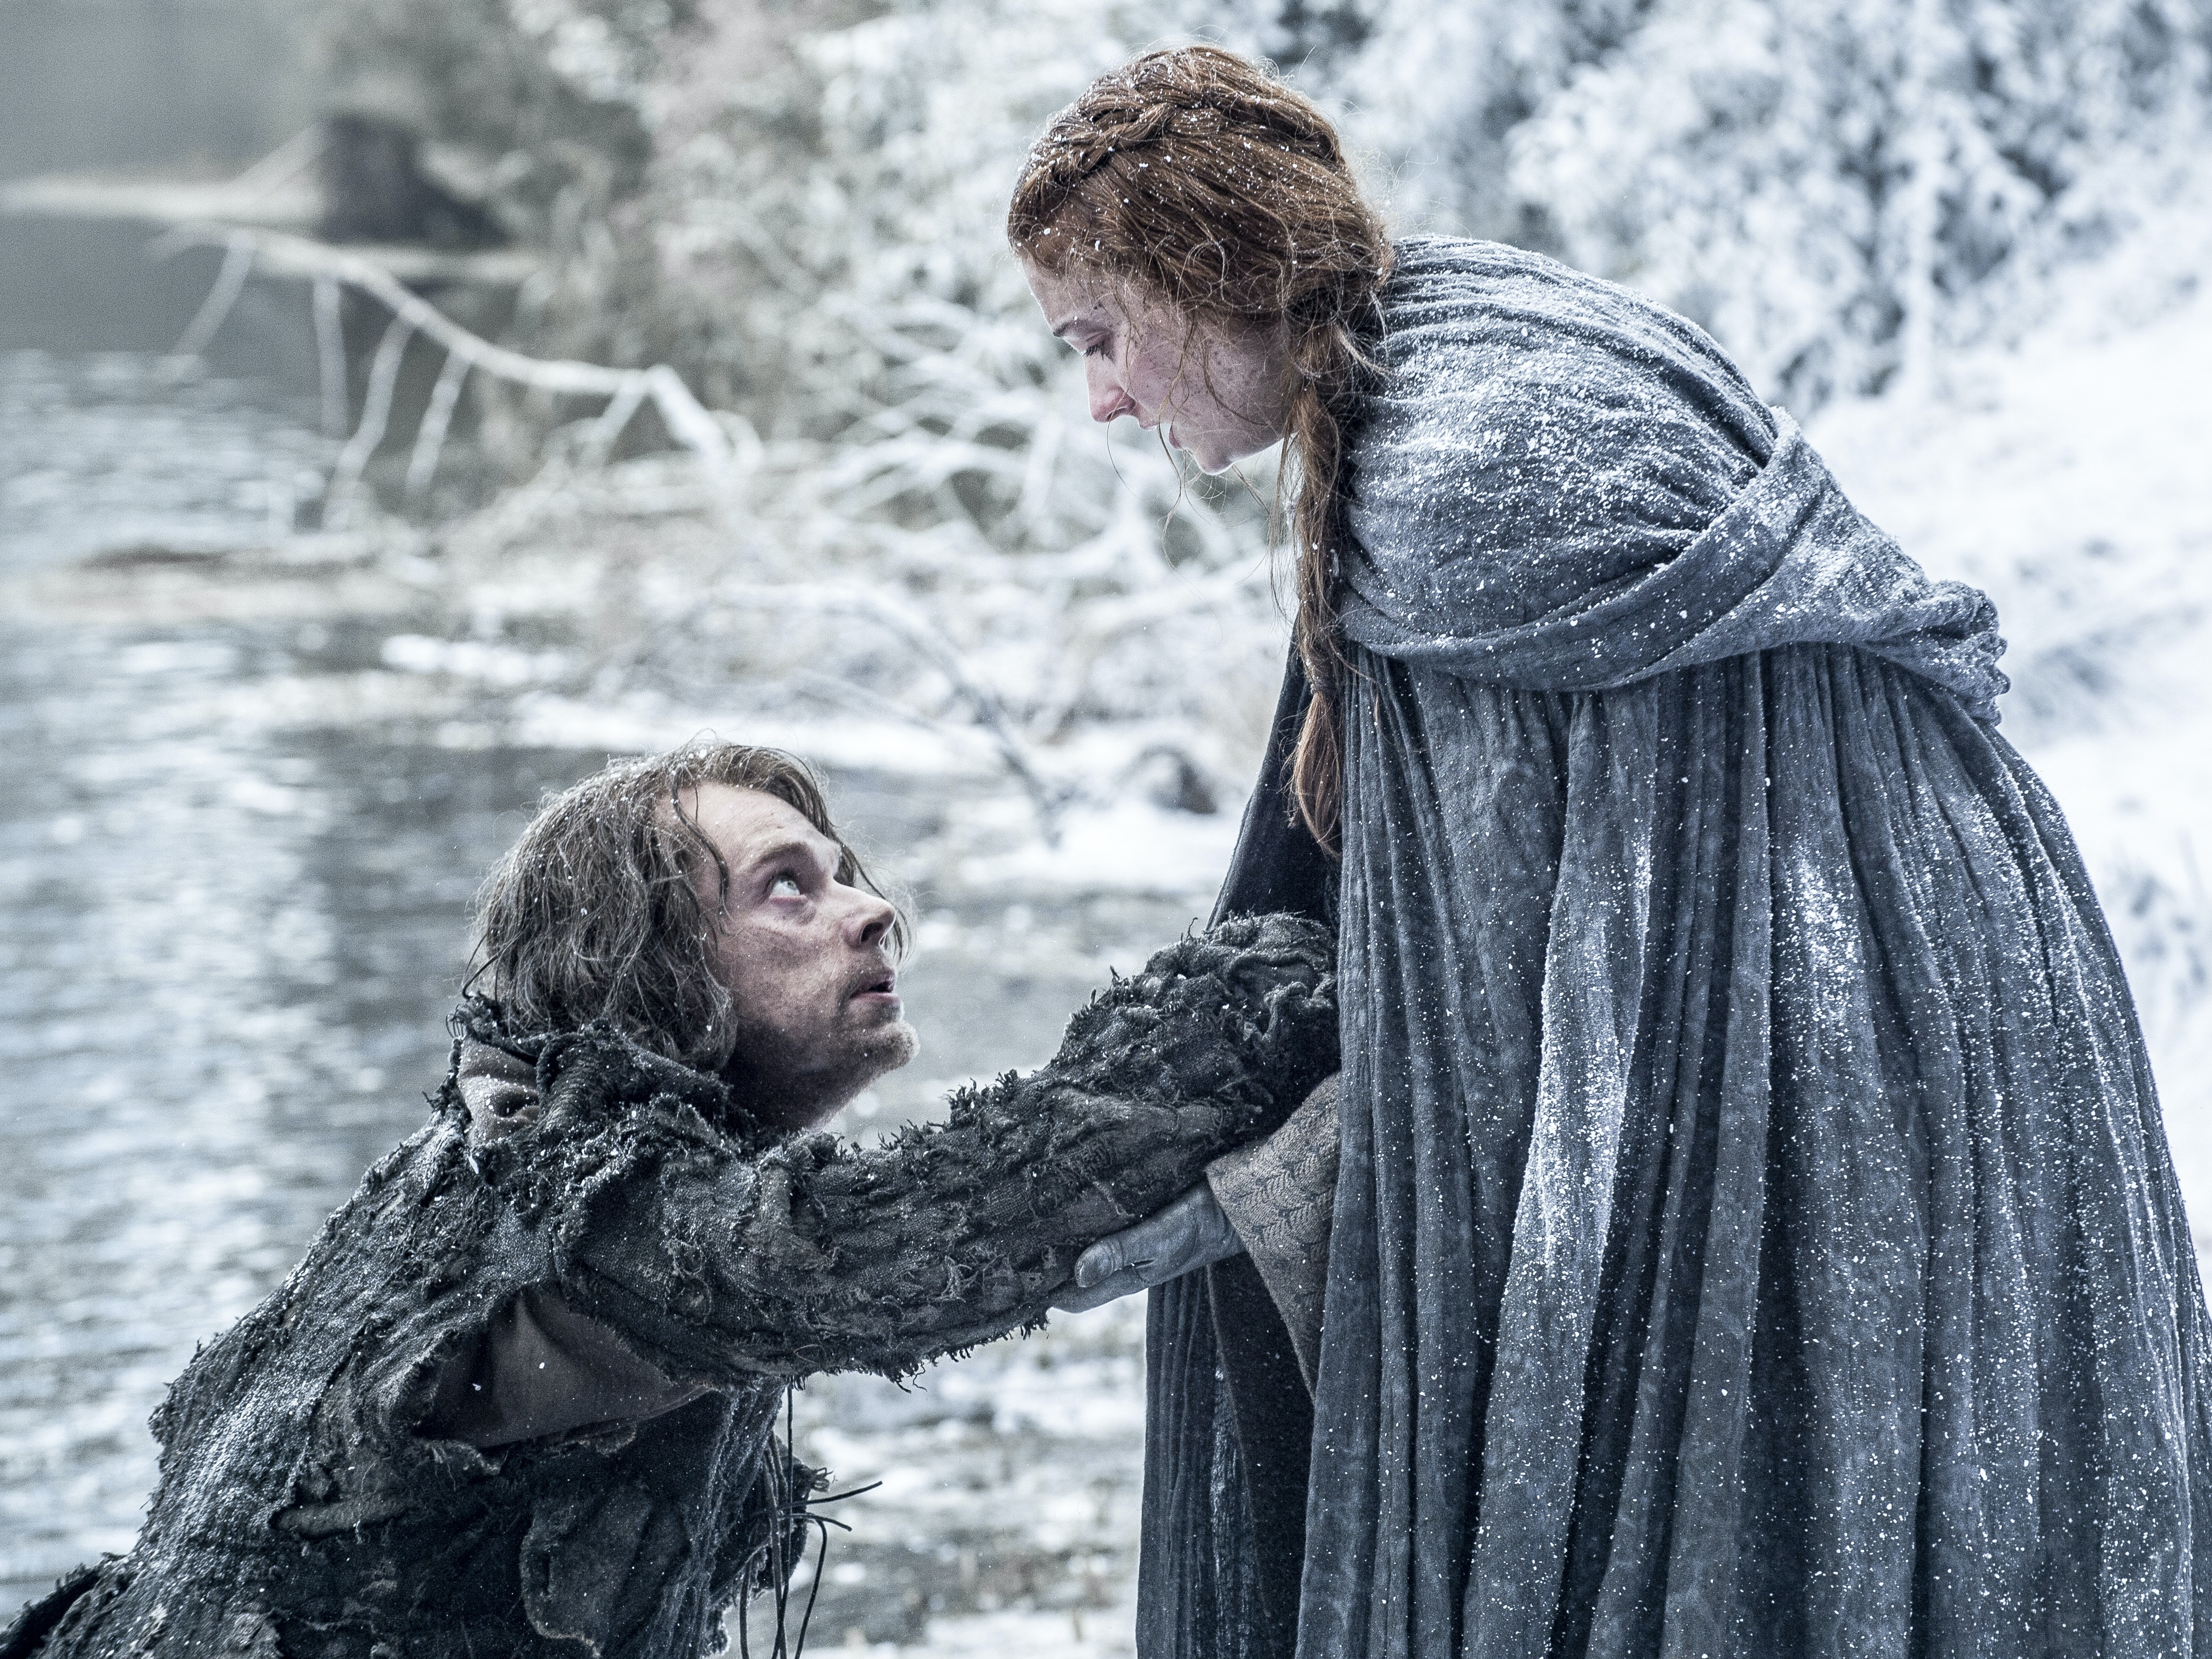 Latest 'Game of Thrones' Season 6 Clip Shows Sansa and Theon Escaping Ramsay